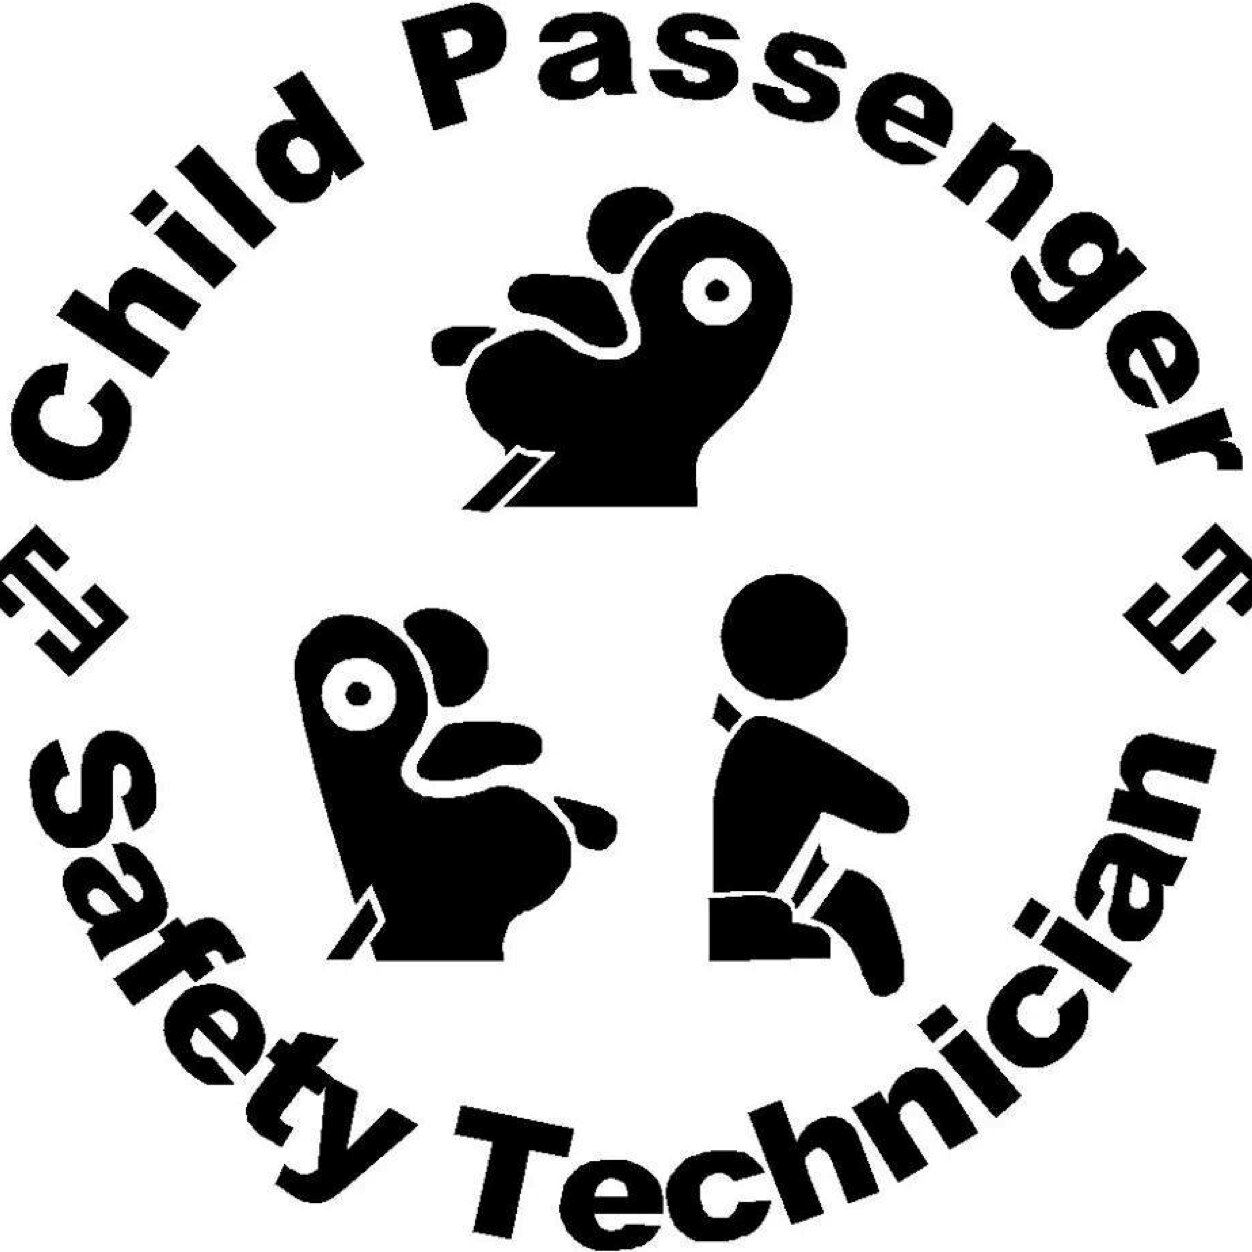 Child pasenger safety technician symbol